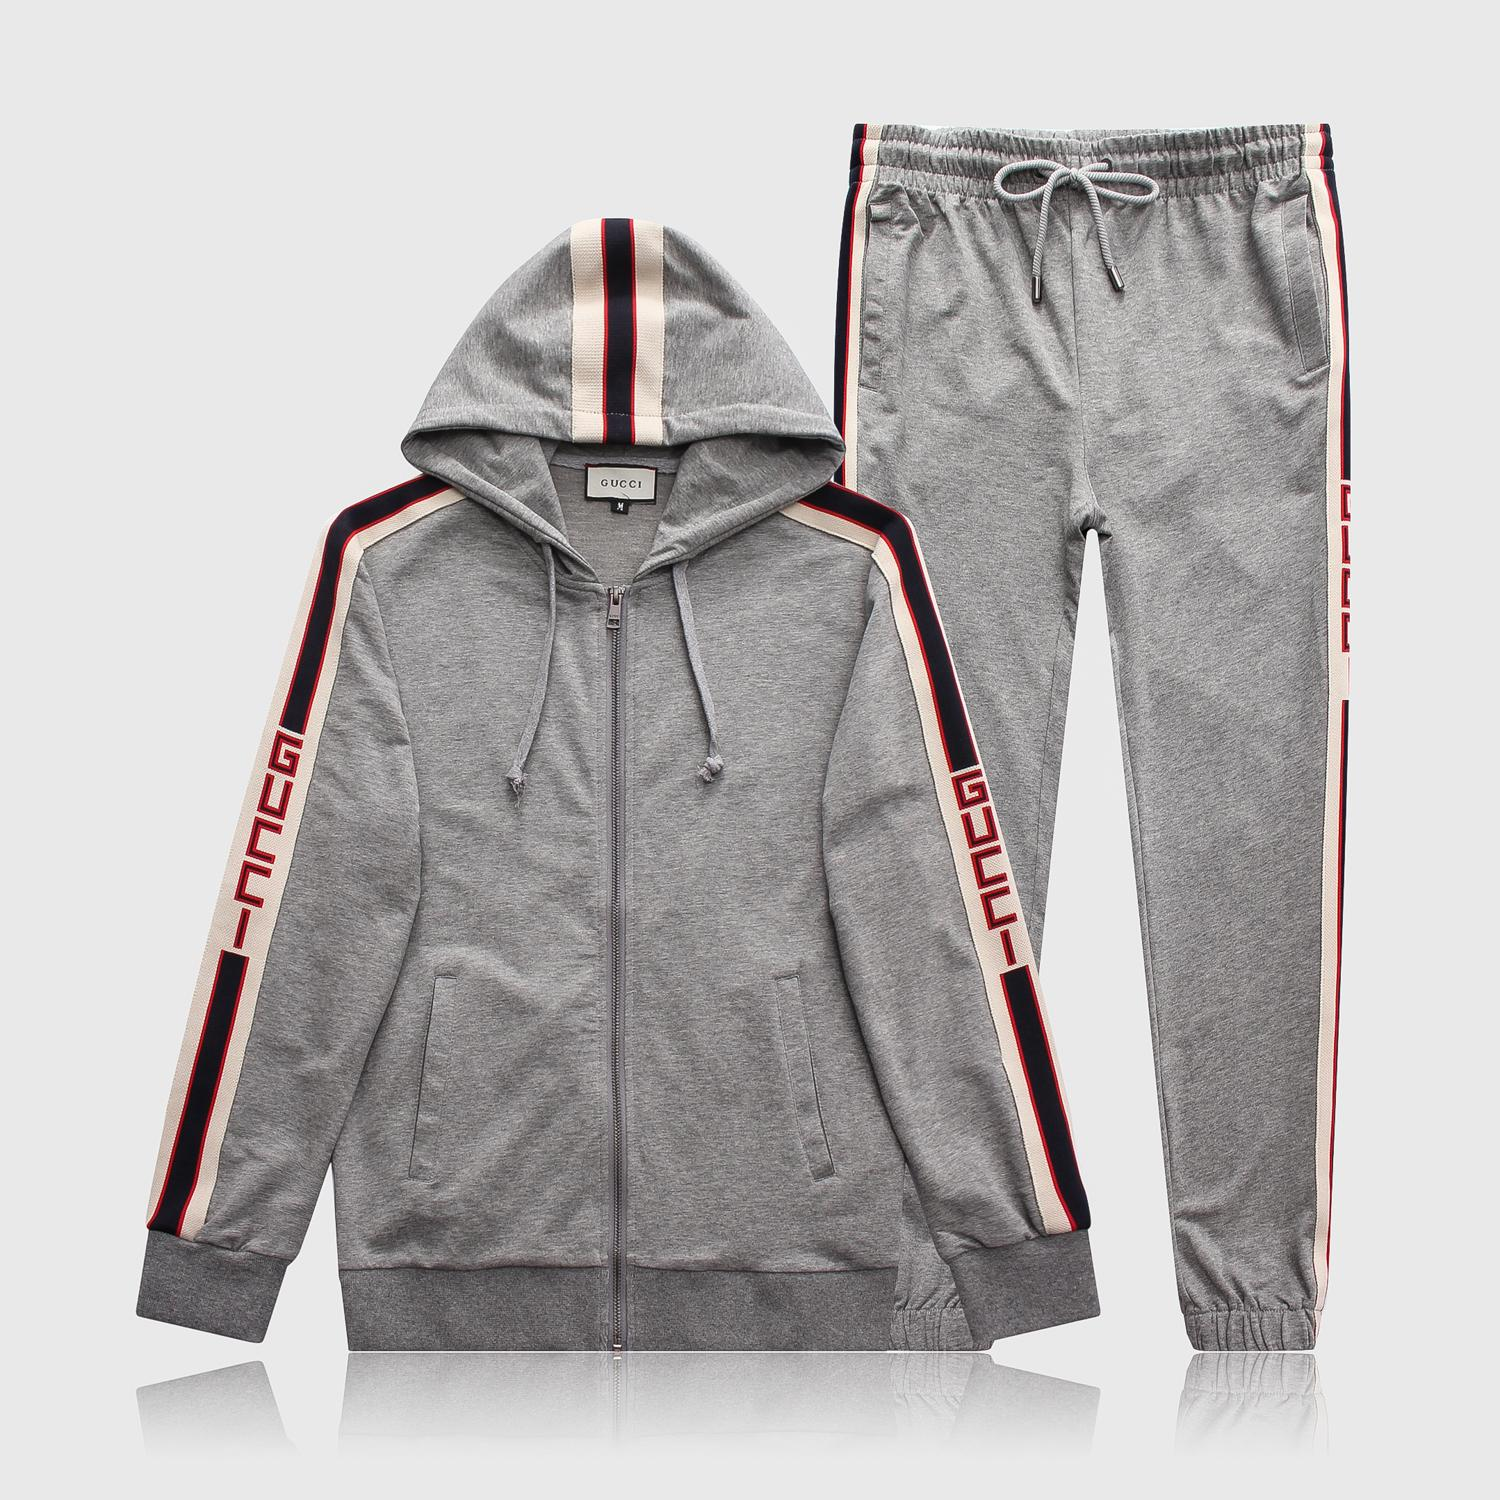 297b740fe7d 2019 Designer Mens Tracksuit Letter Luxury Casual Suits Hoodies + Pants  Spring Autumn Zipper Kits Sports Running Tracksuit From Kigoo, $140.11 |  DHgate.Com